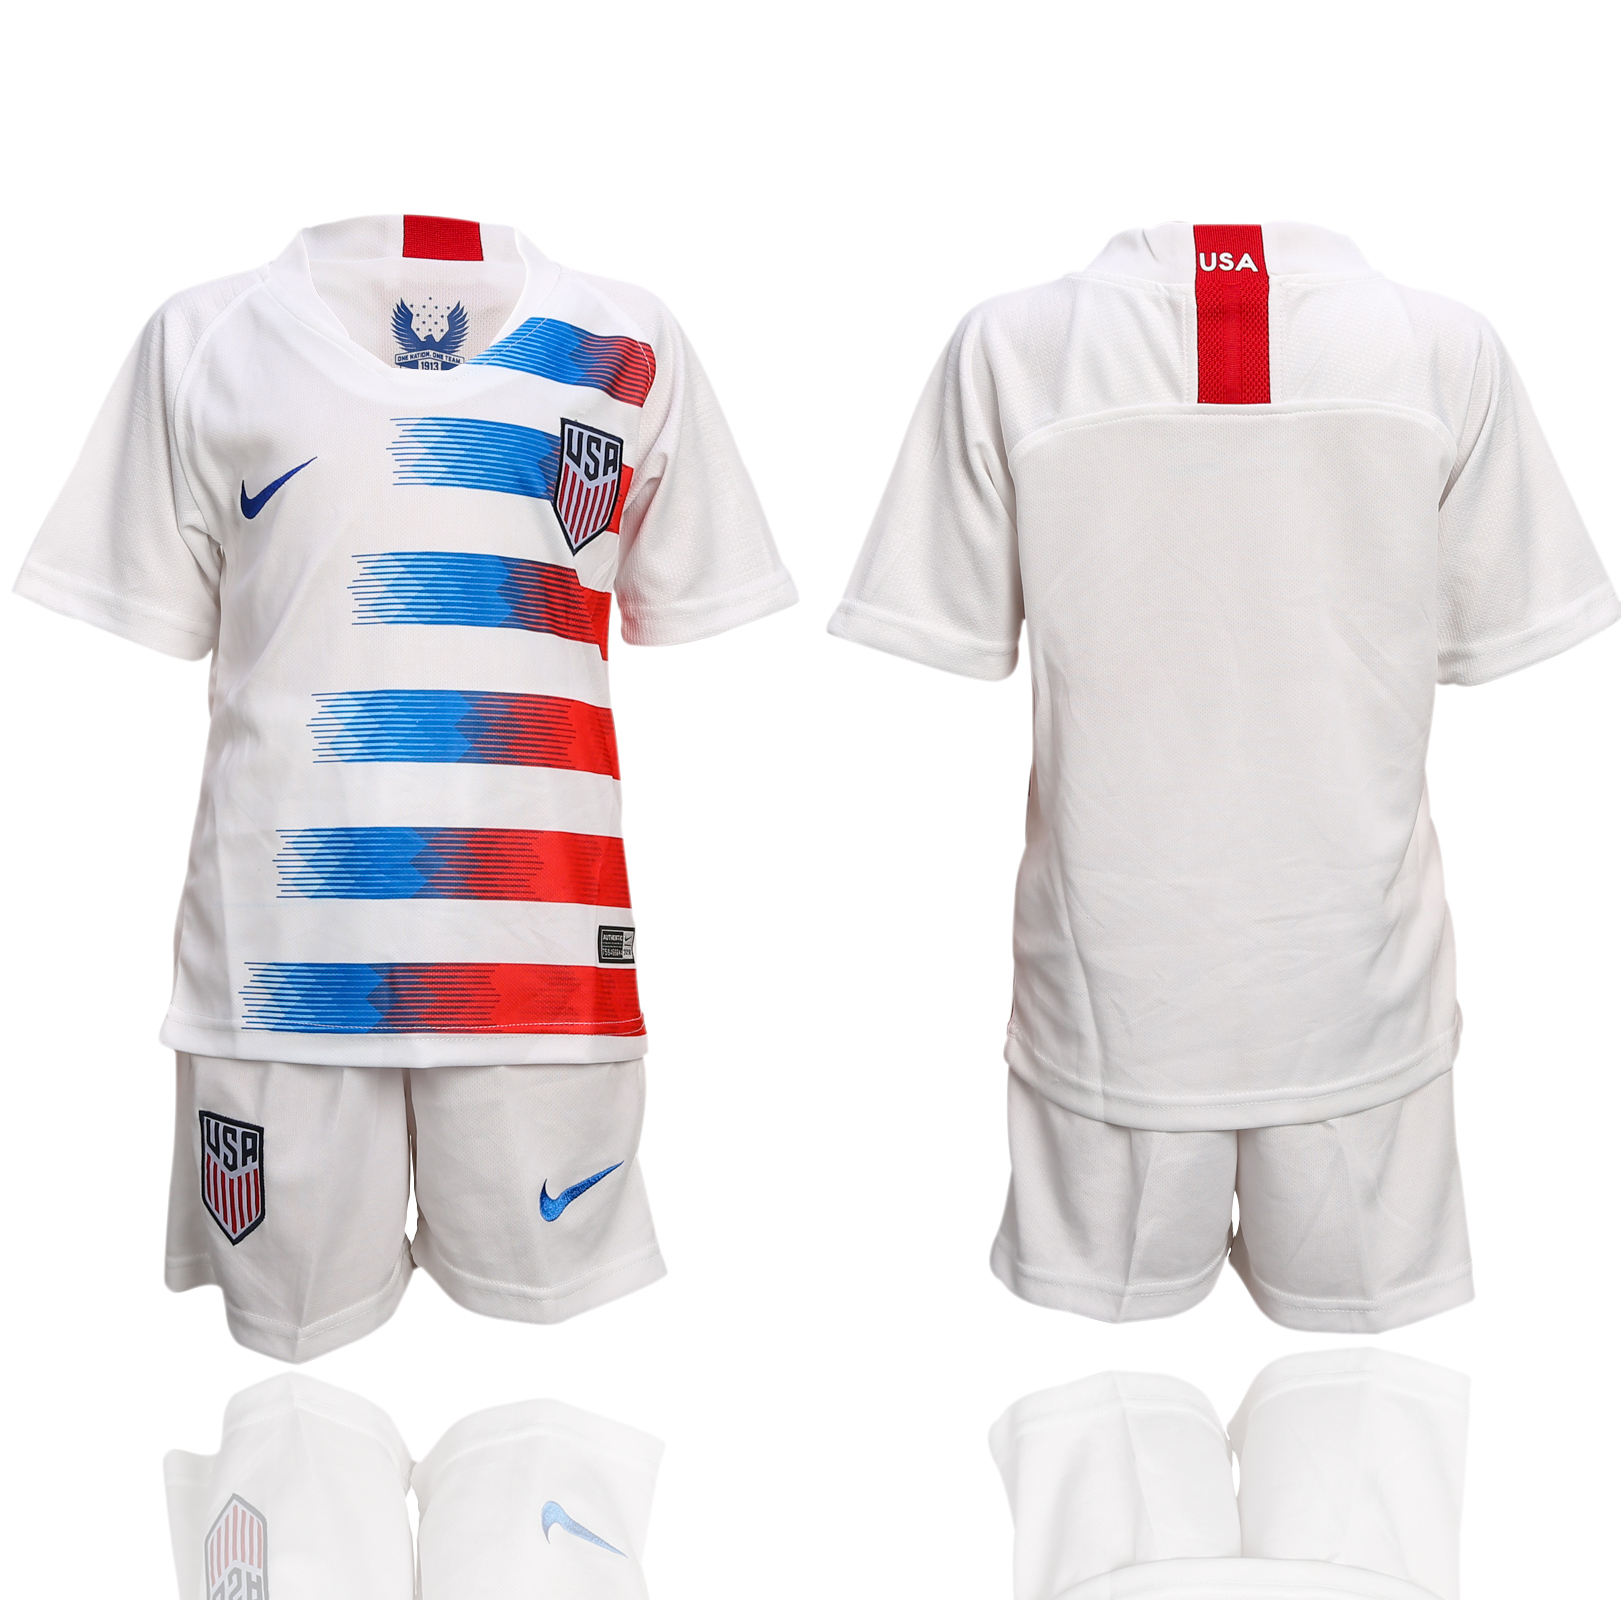 2018-2019 national America home youth soccer jerseys